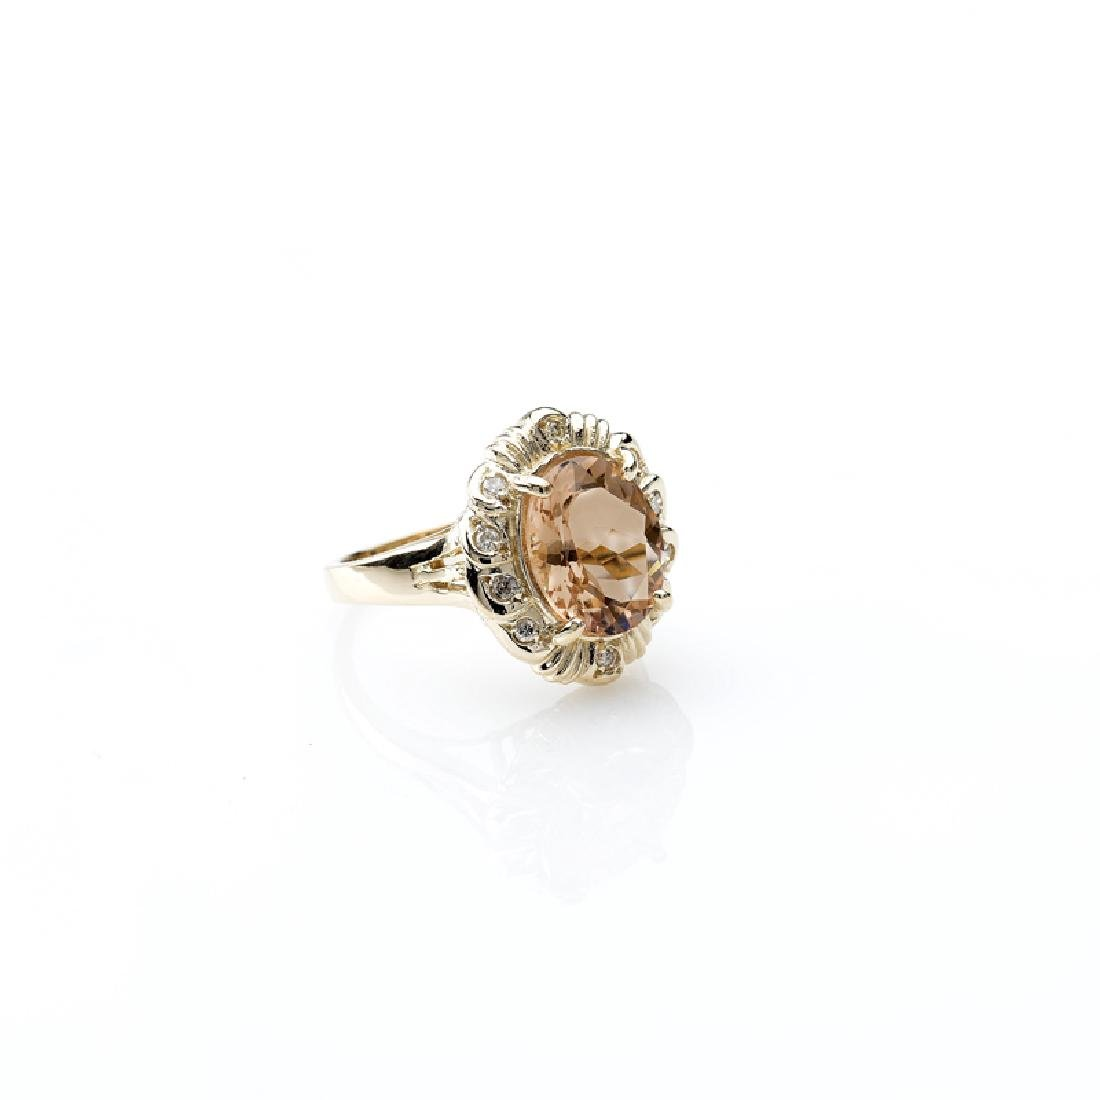 APP: 6.1k Fine Jewelry 14kt. Gold, 3.90CT Champagne